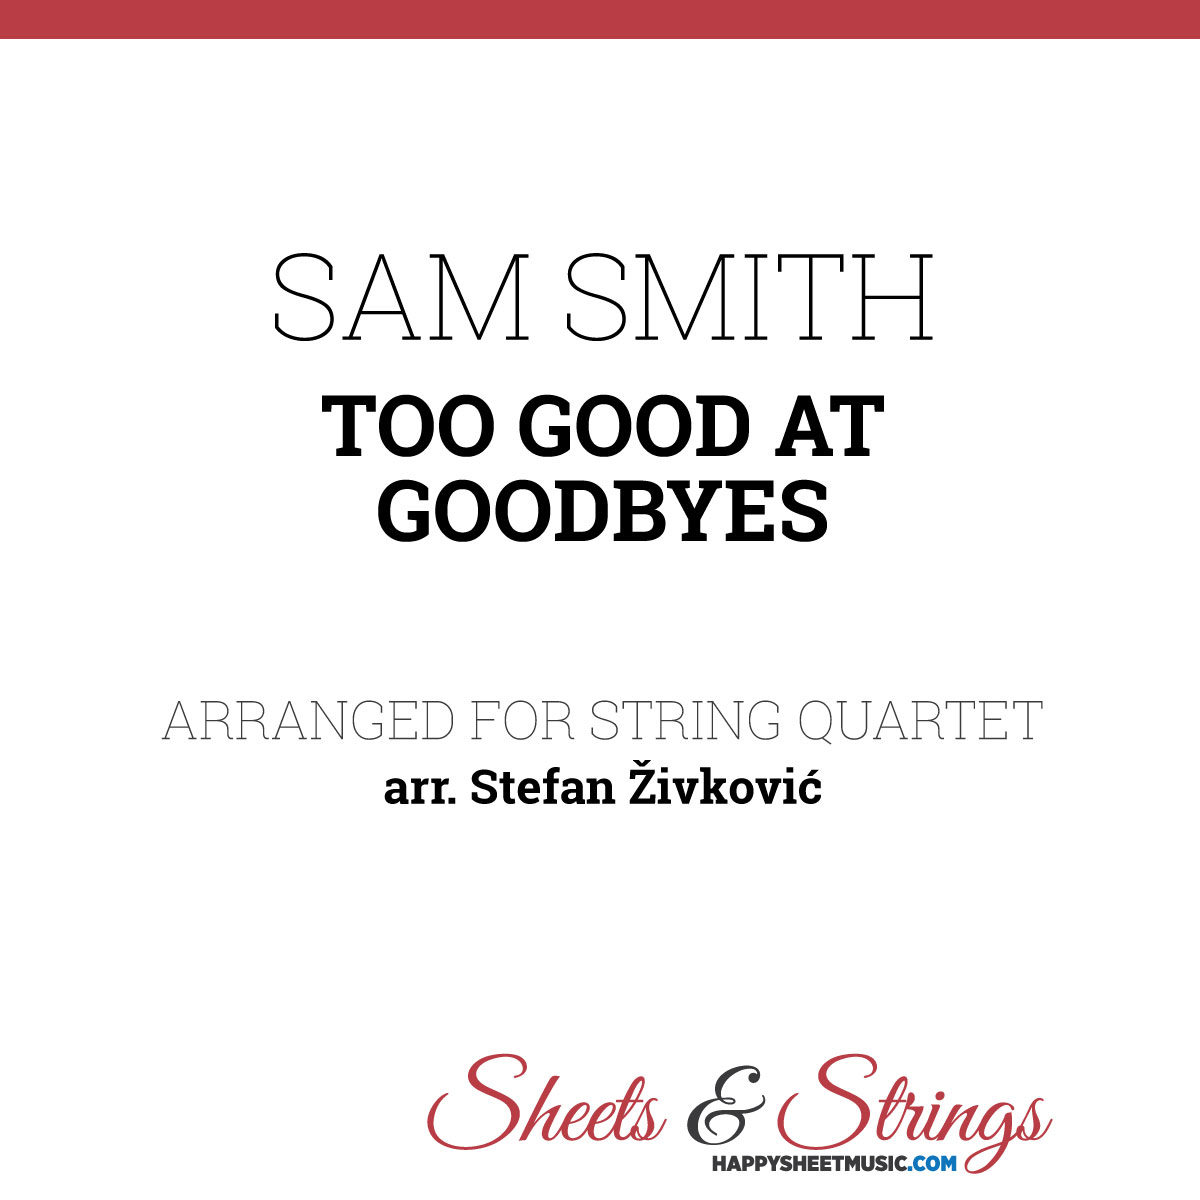 Sam Smith - Too Good at Goodbyes Sheet Music for String Quartets